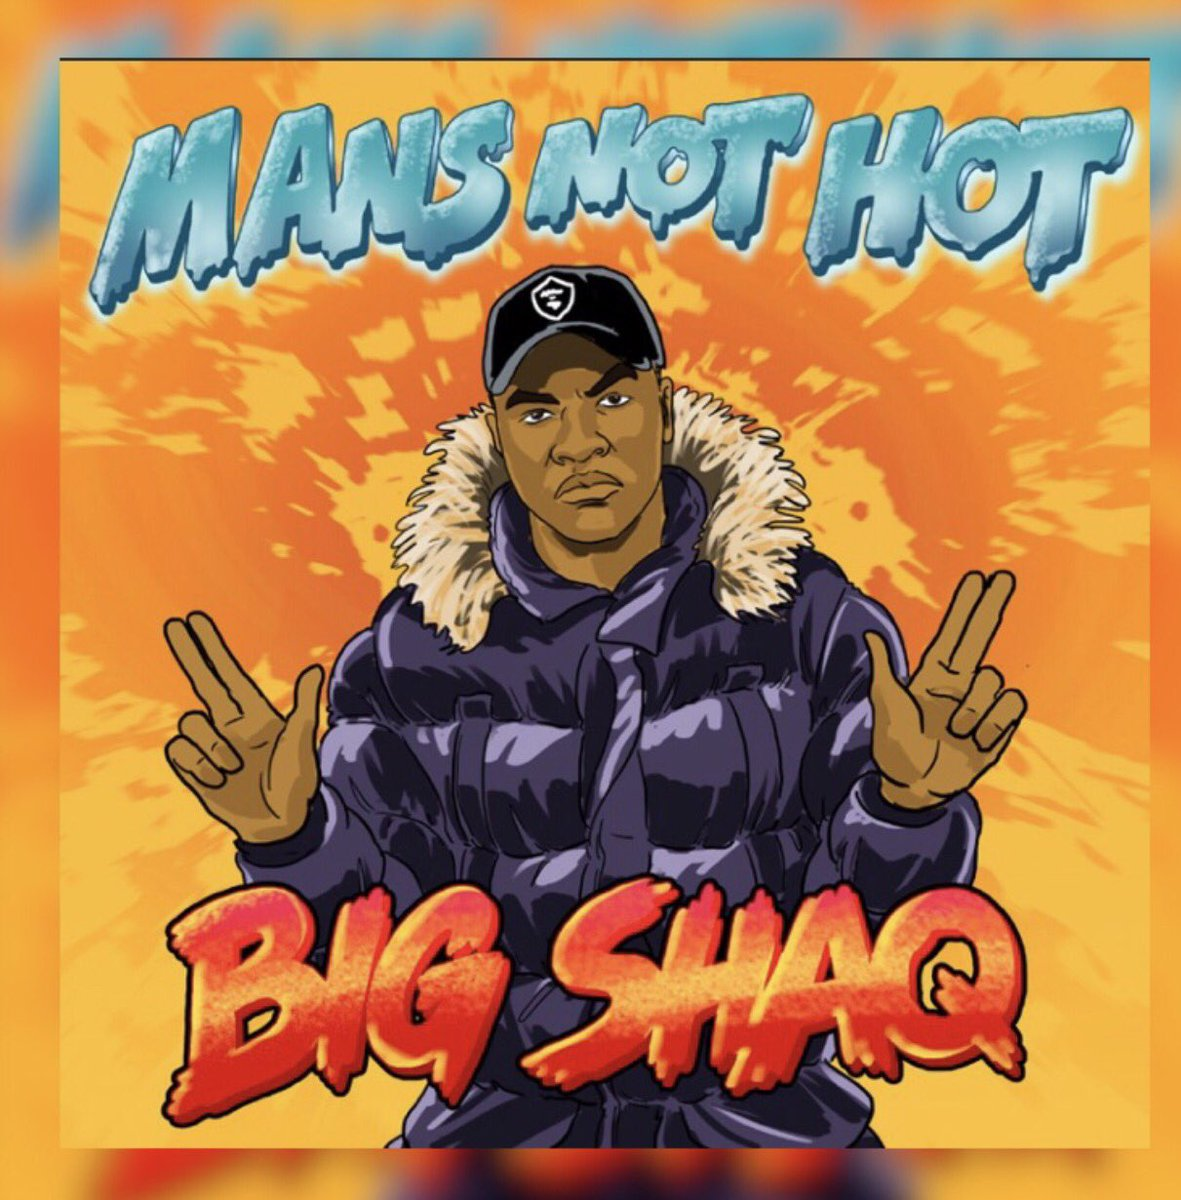 Big Shaq - 'Mans Not Hot'